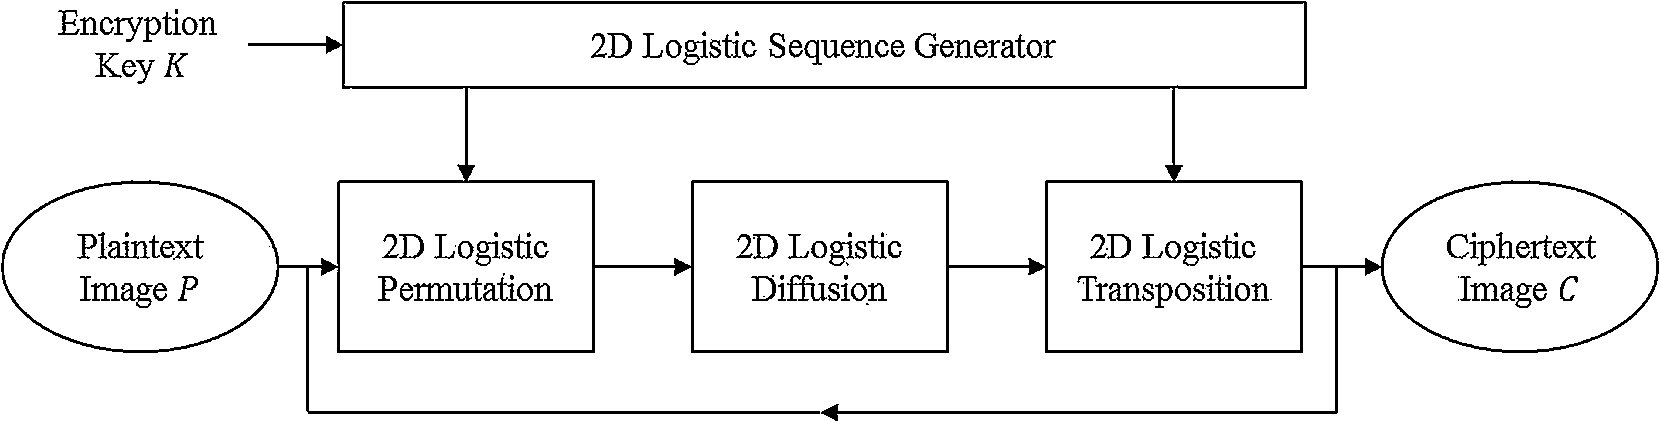 Image encryption using the two-dimensional logistic chaotic map